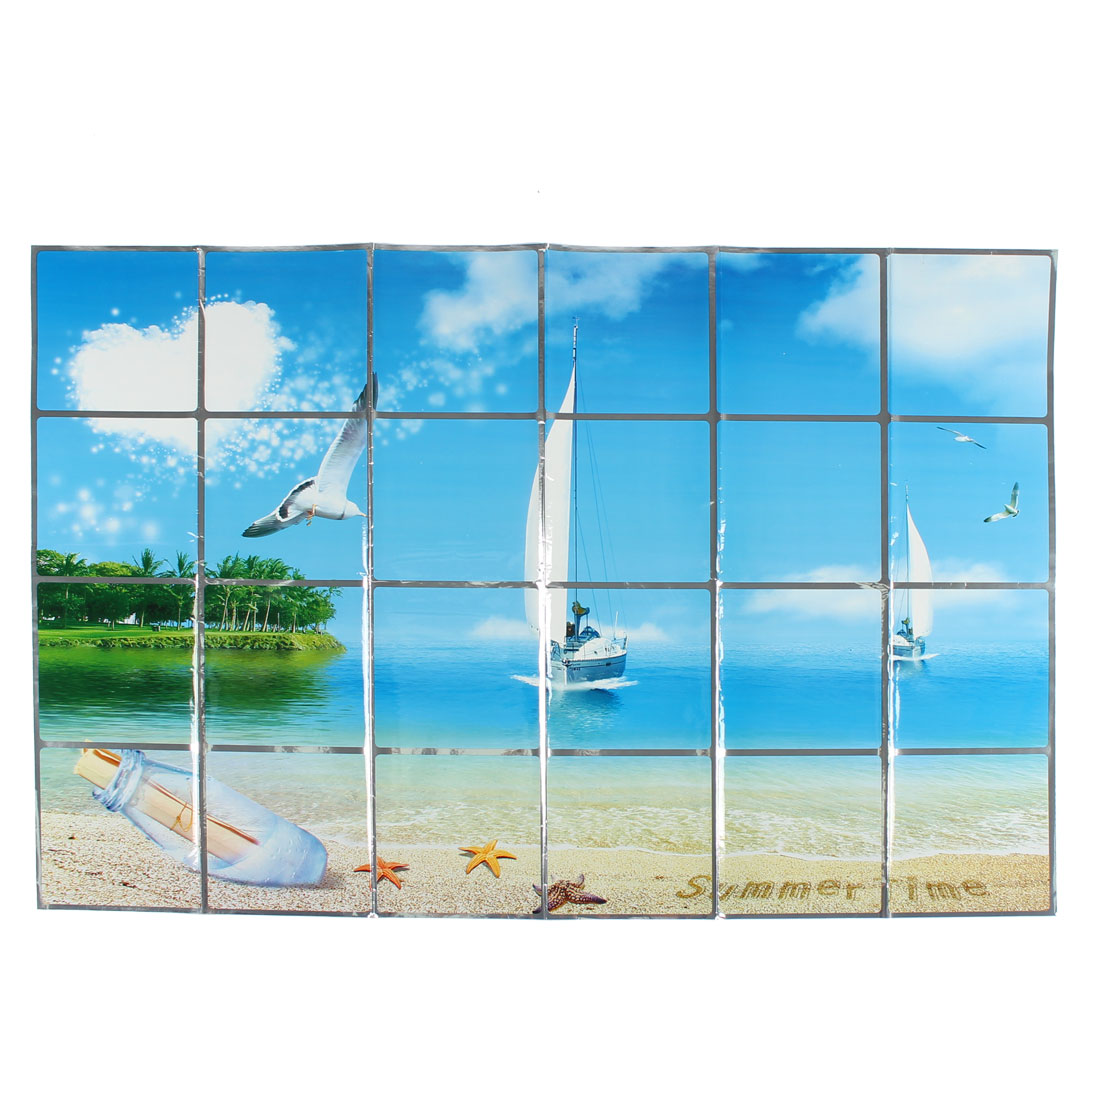 Kitchen Offshore Sailing Pattern Removable Self-adhesive Oilproof Wall Window Sticker 90 x 60cm